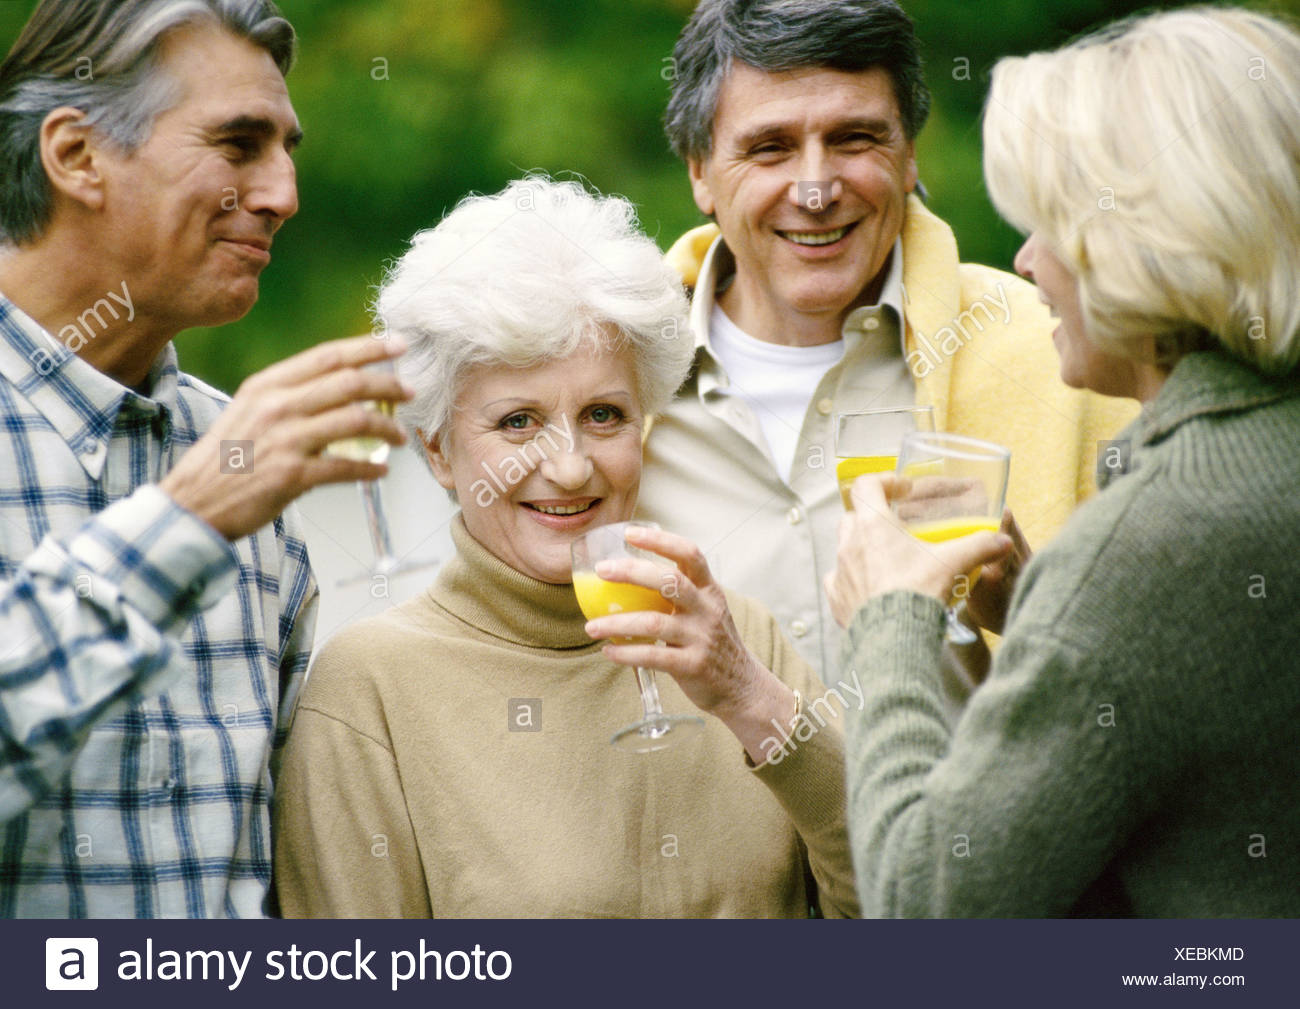 Mature people standing together with drinks in hands, close up - Stock Image